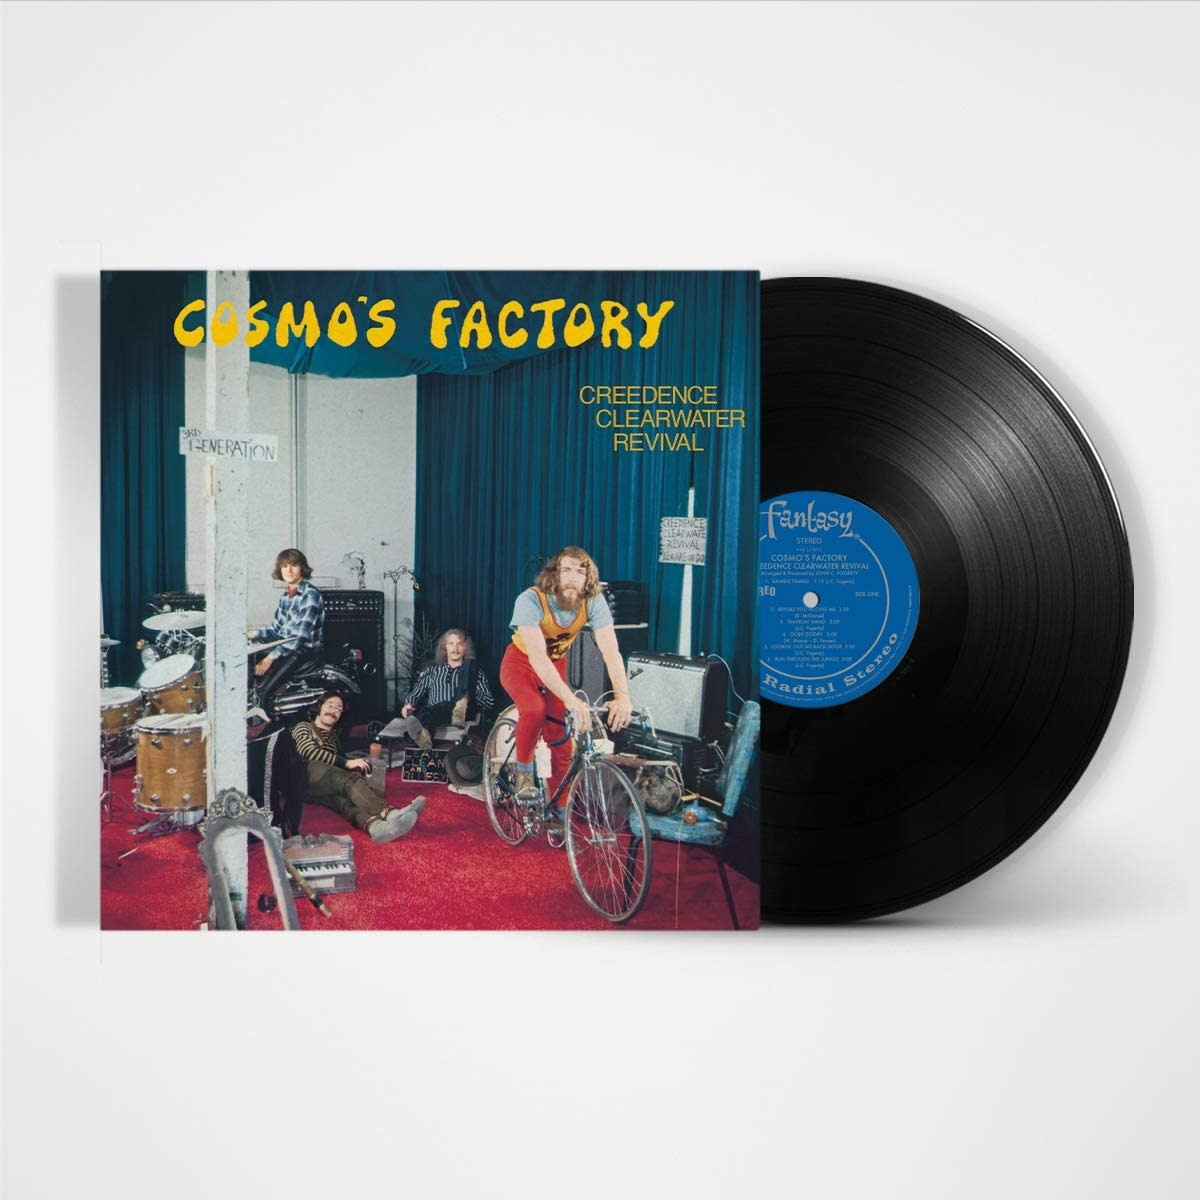 Creedence Clearwater Revival – Cosmo's Factory (50th Anniversary Half-Speed Master Vinyl)